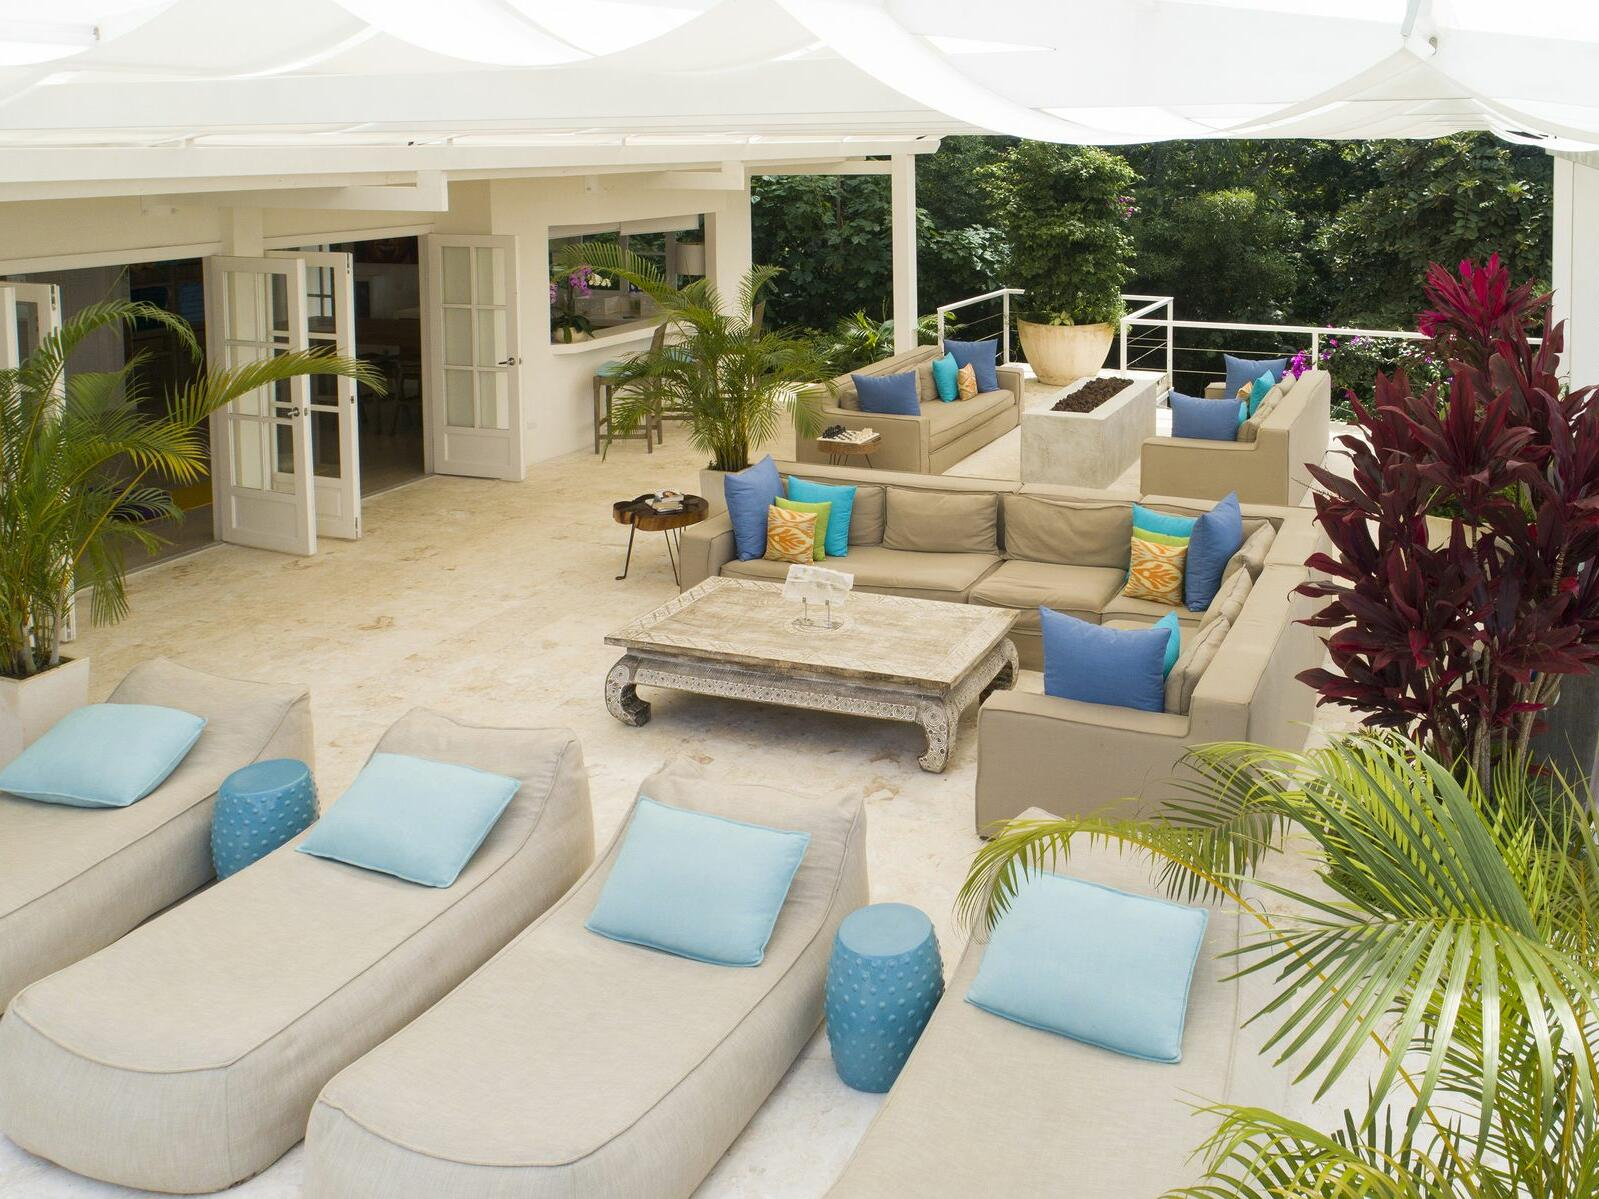 terrace with lounge chairs and sofas